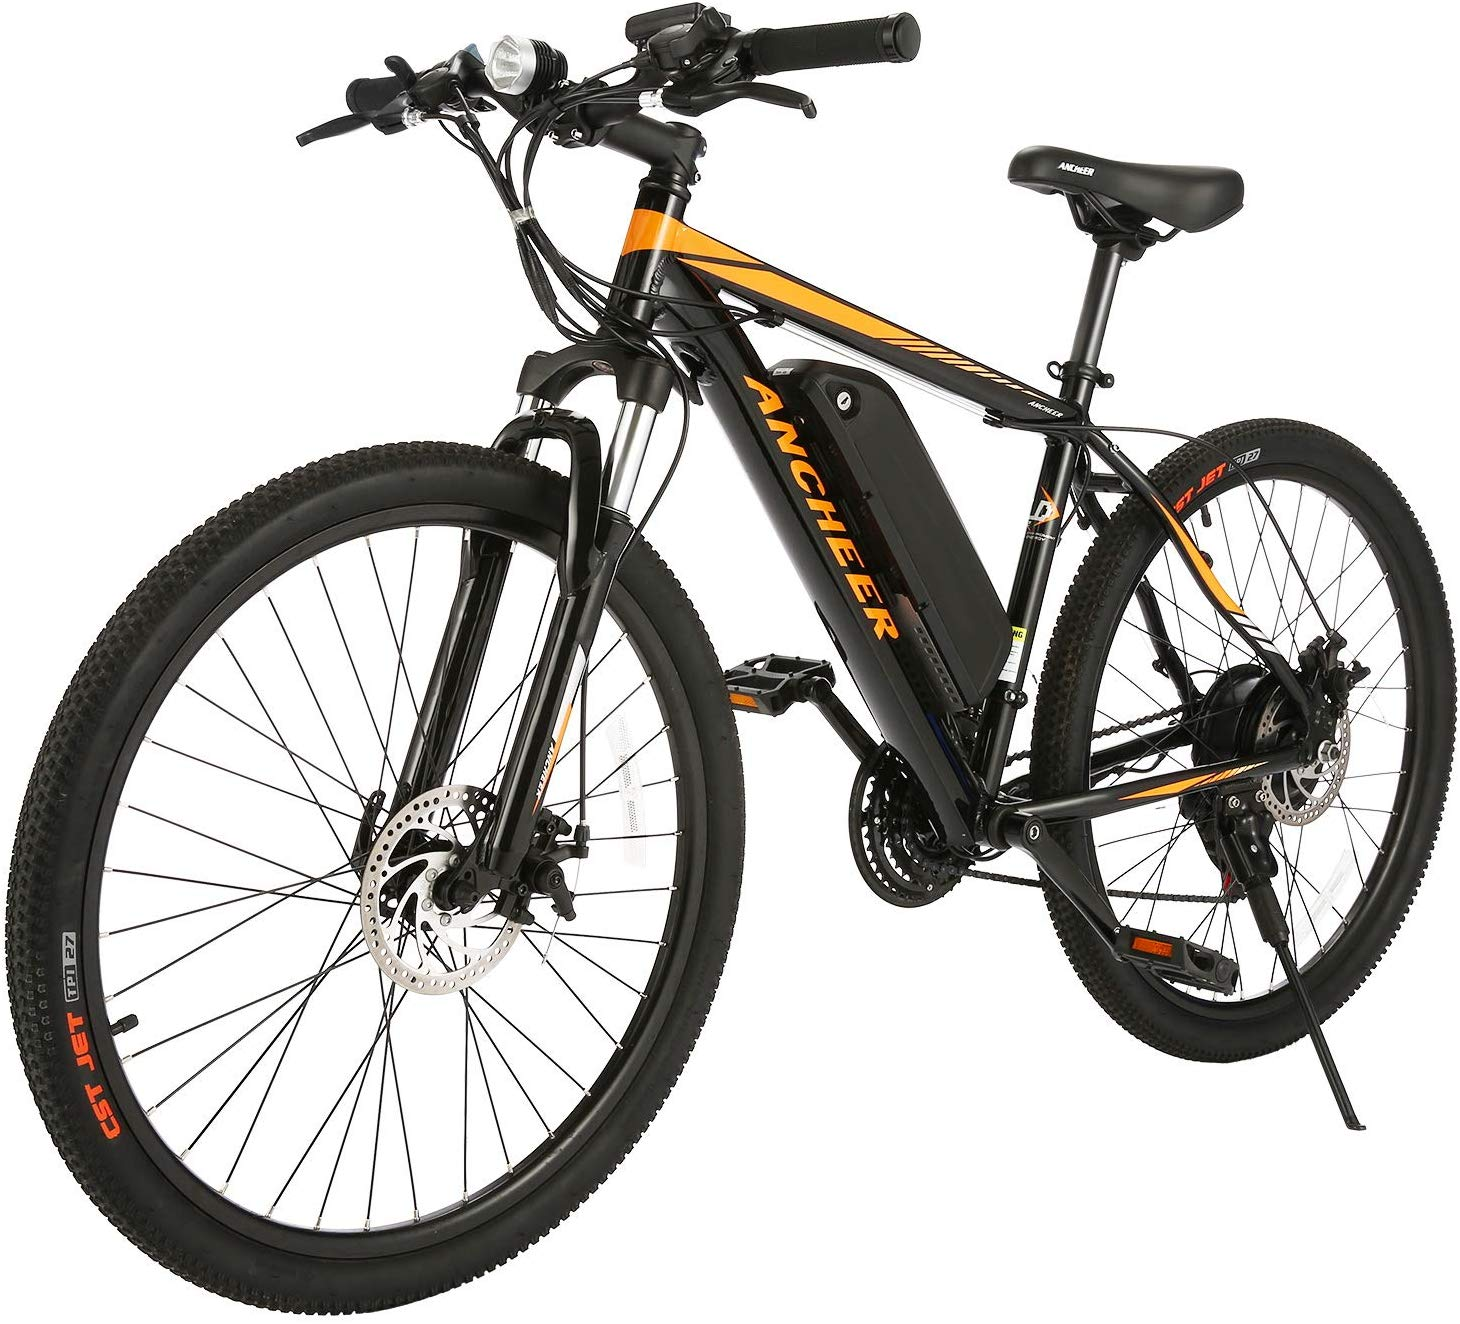 ANCHEER Electric Mountain Bike 350W 26 27.5 Inches